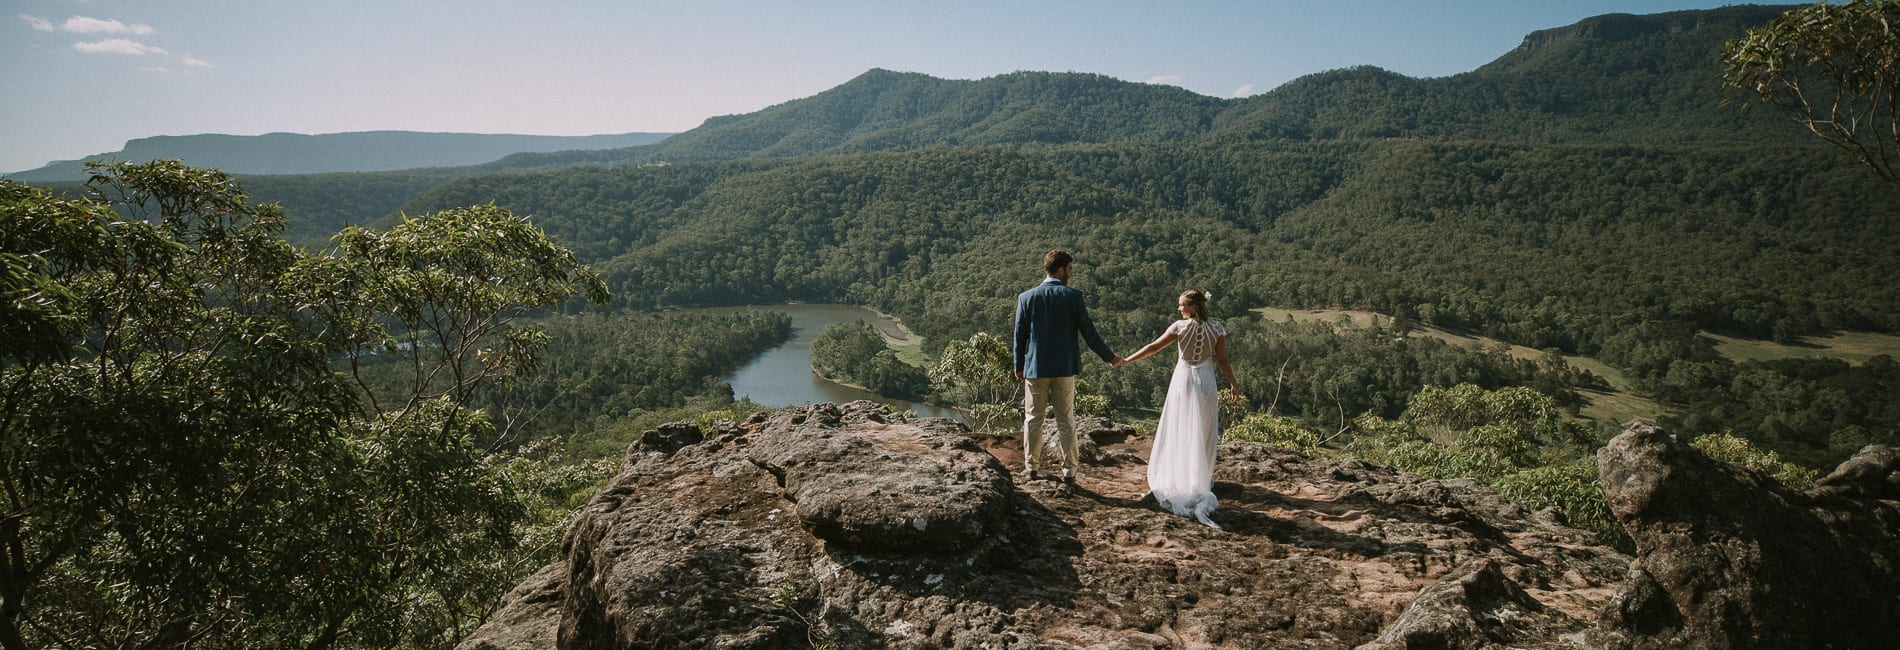 Amelia+Dan stand on the cliff face viewing the amazing view during their wedding photo shoot